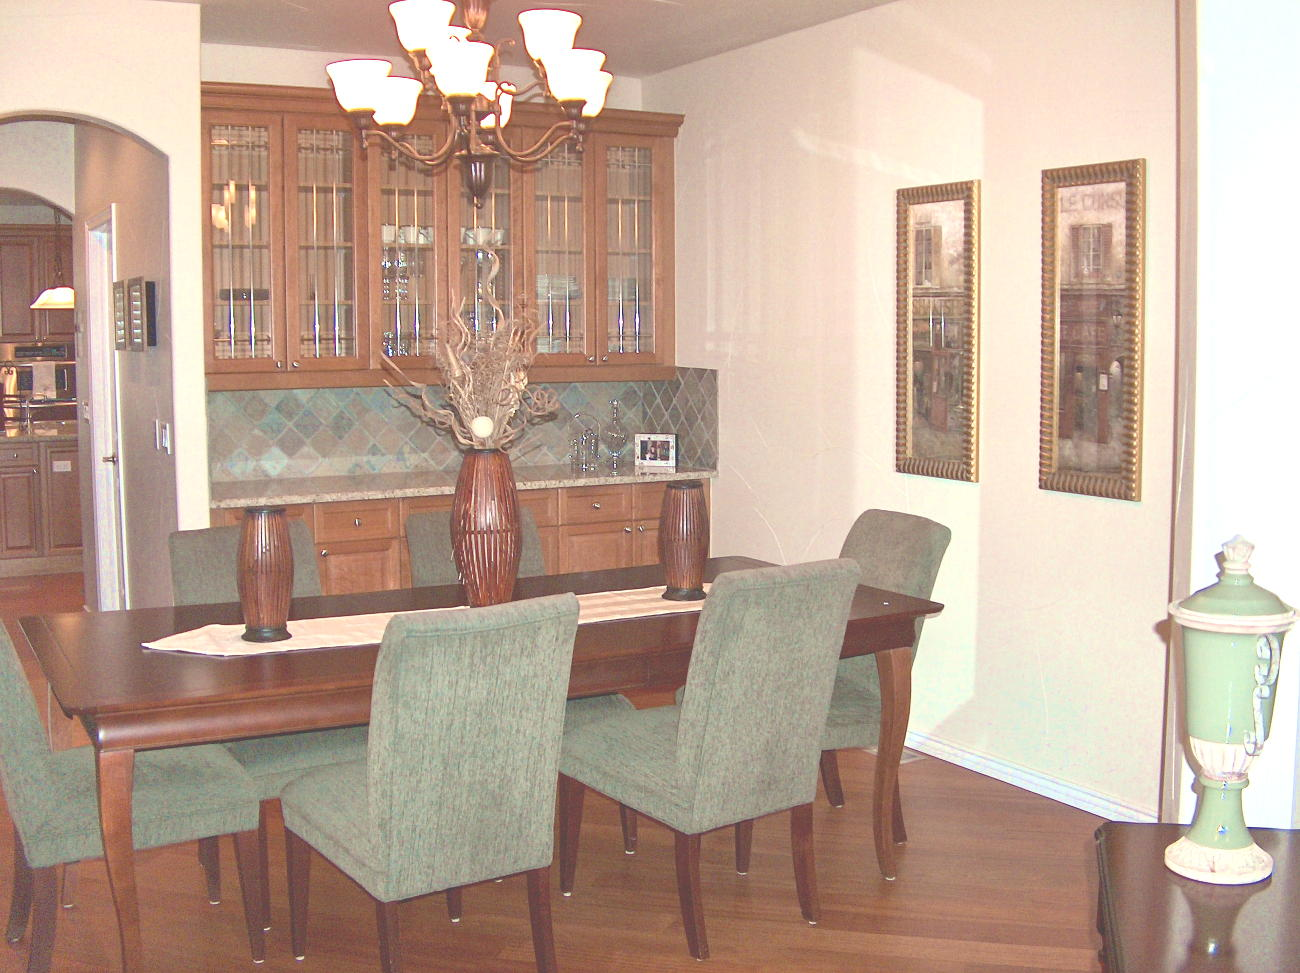 Photo of Dining Room After Staging